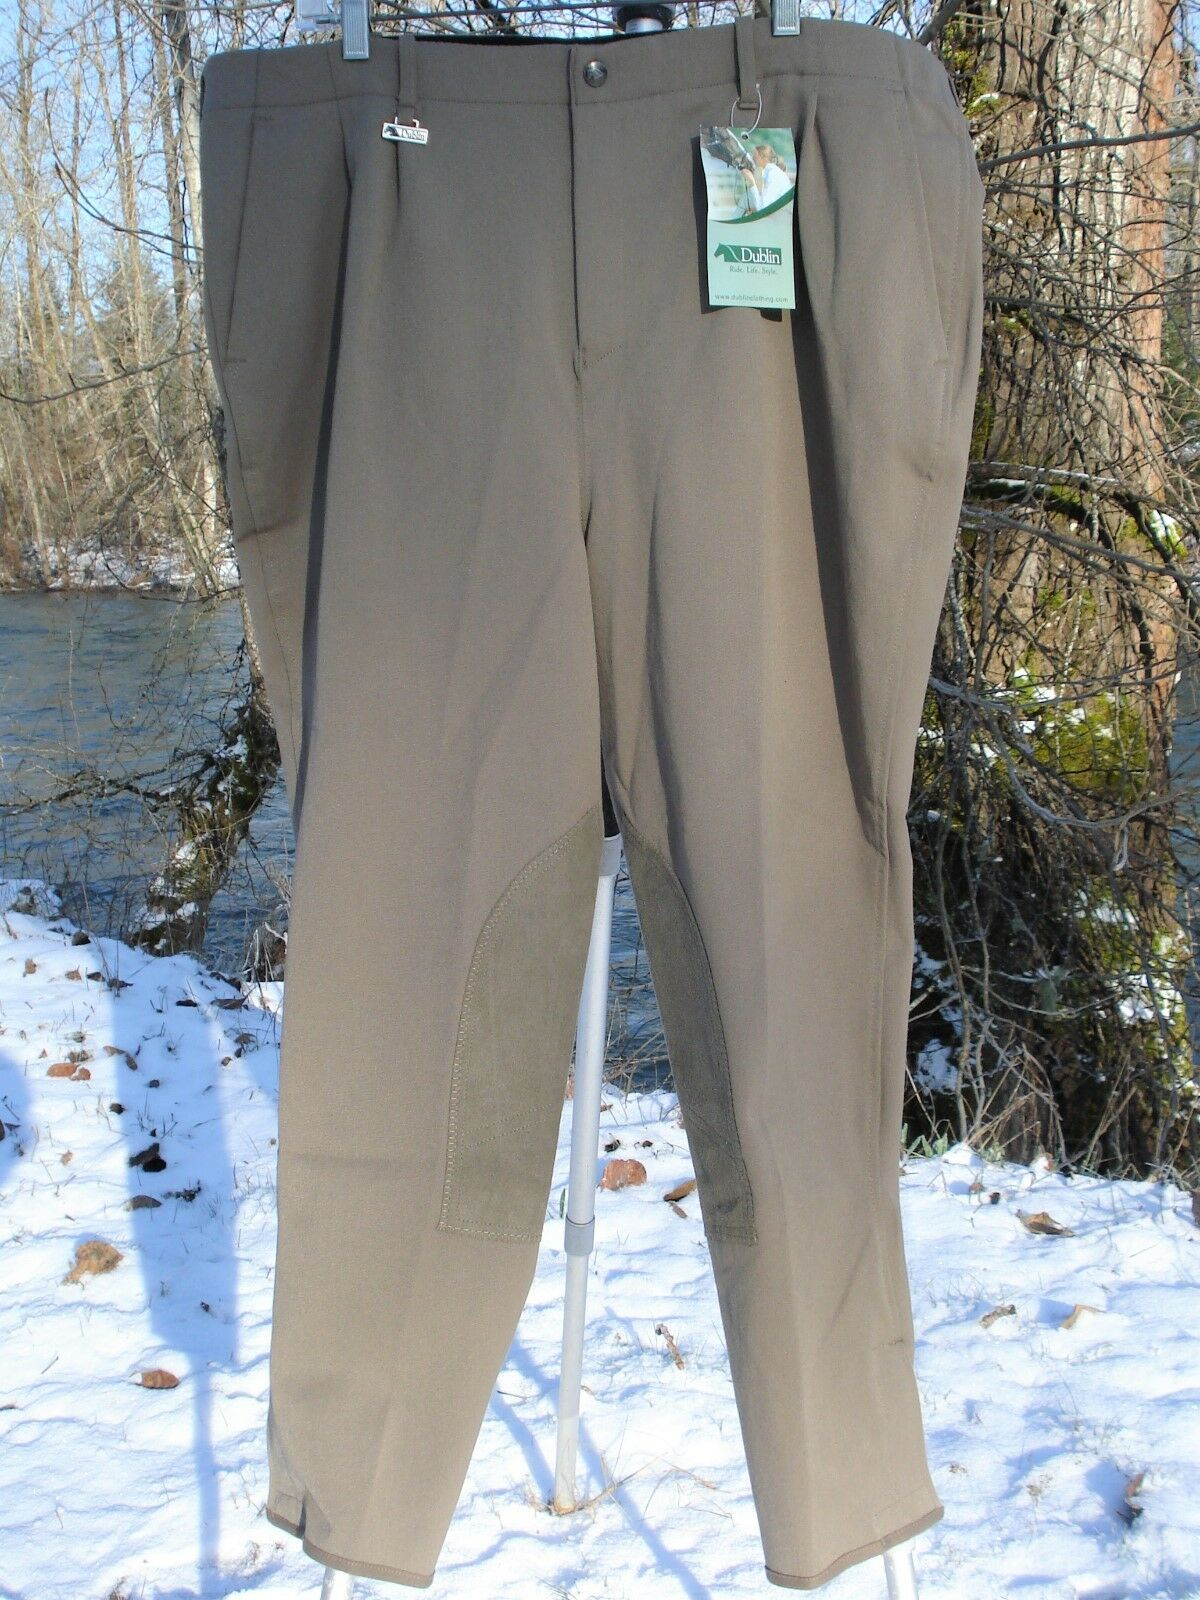 DUBLIN RIDING BREECHES M WAIST 39  HIPS 49  I.S. 27  TAUPE SUEDE PADS NEW w TAGS